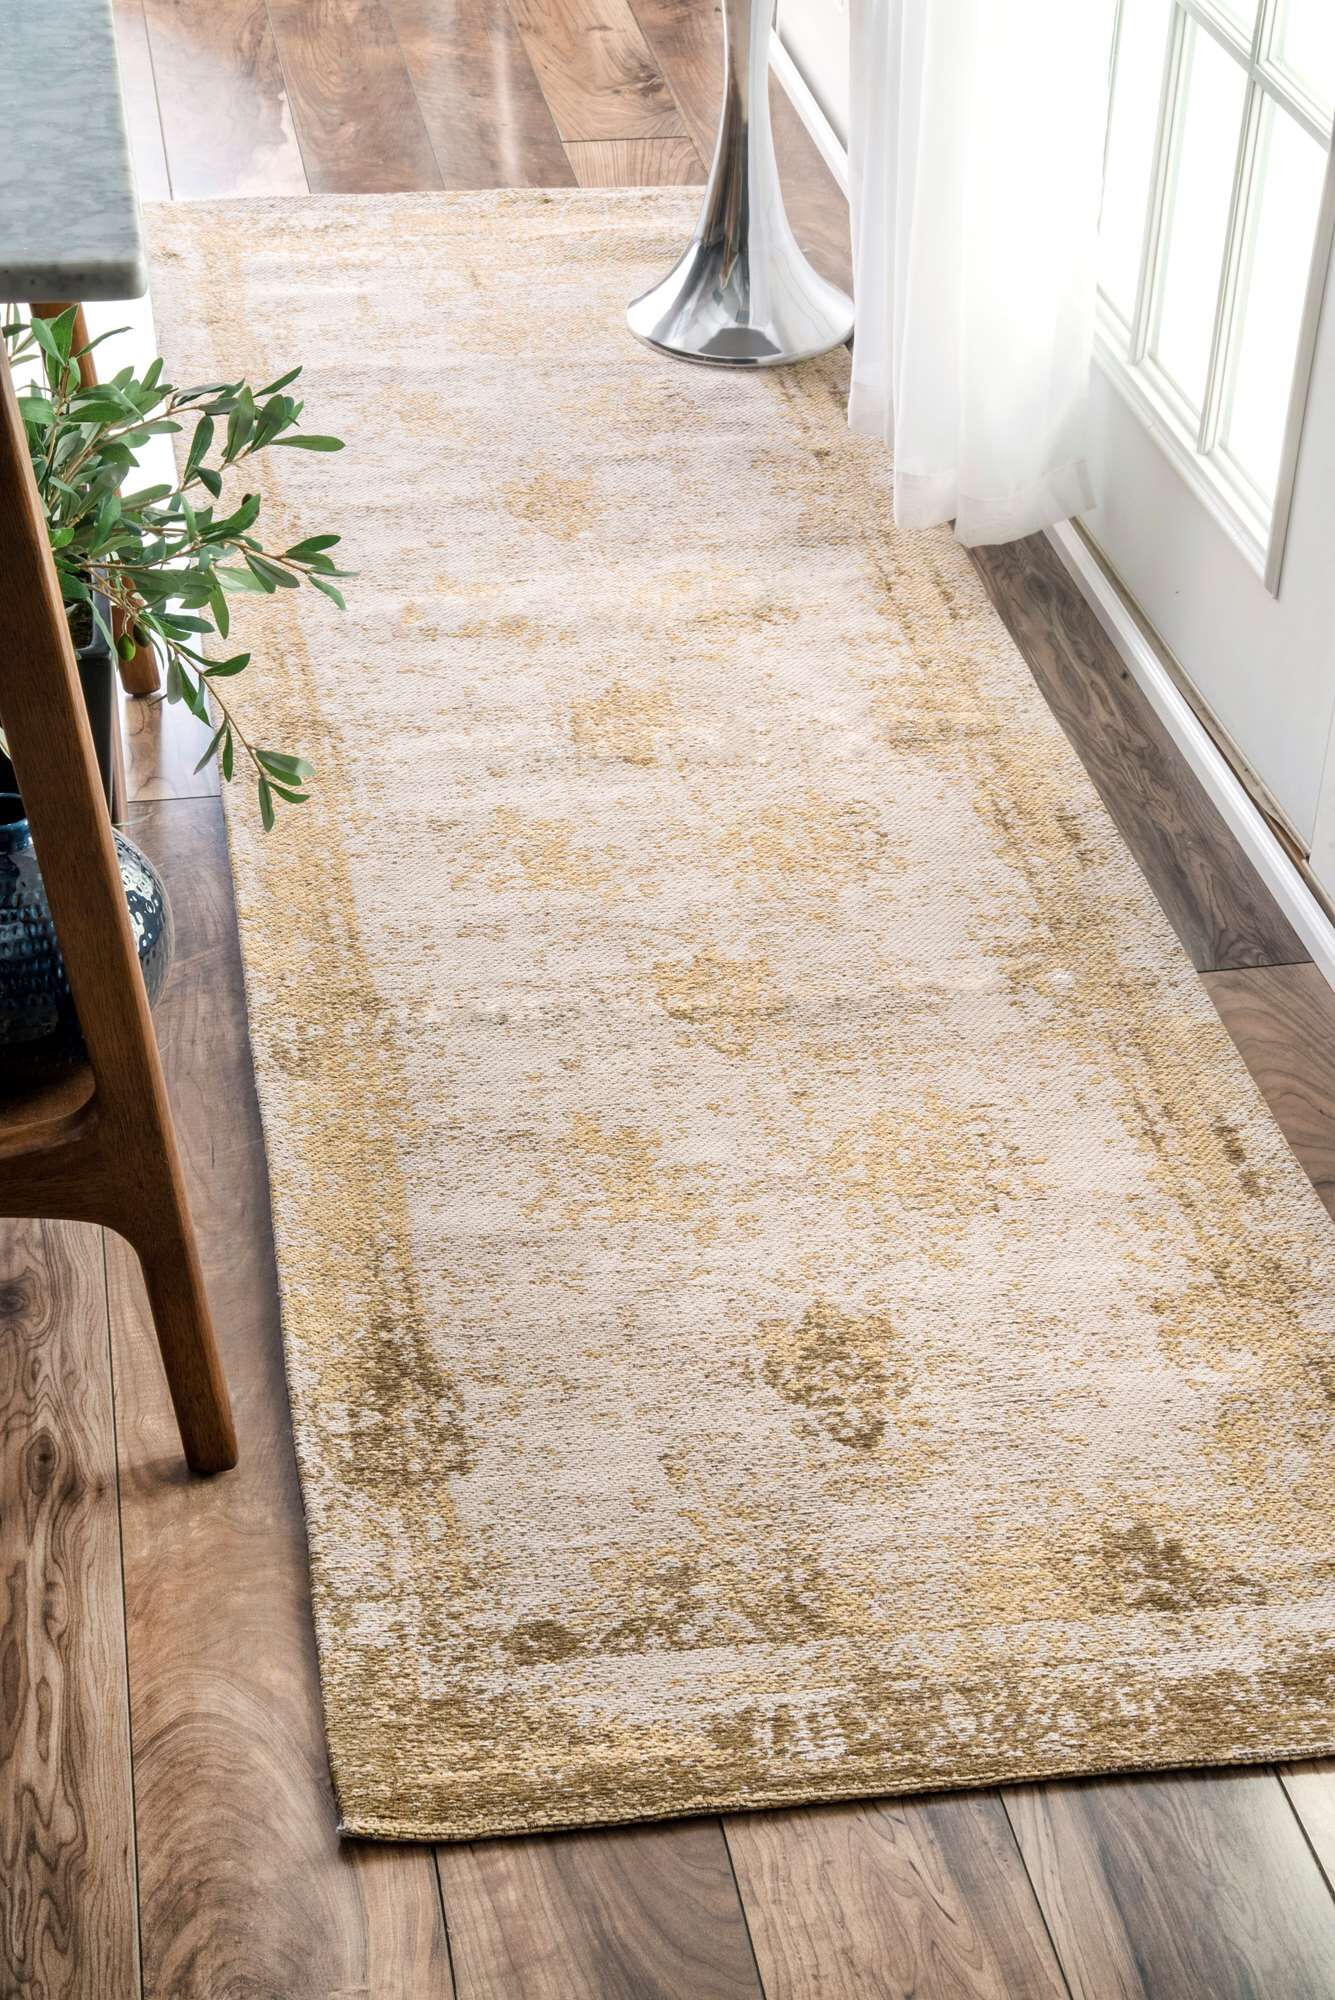 Chartres Hand-Woven Cream Area Rug Rug Size: Runner 2'6